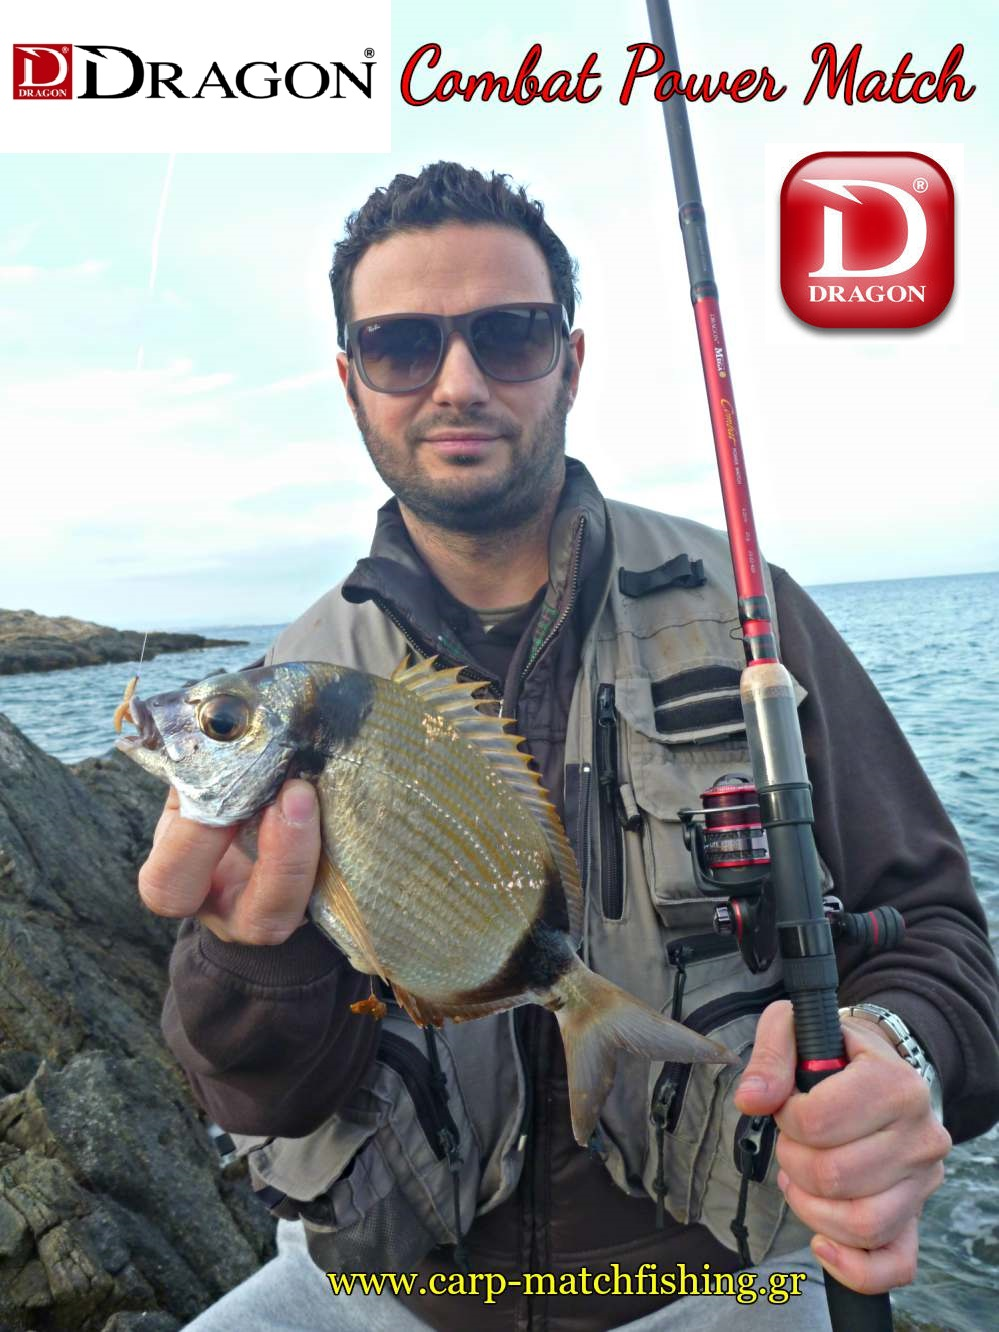 combat-power-match-rod-sargos-dragon-carpmatchfishing